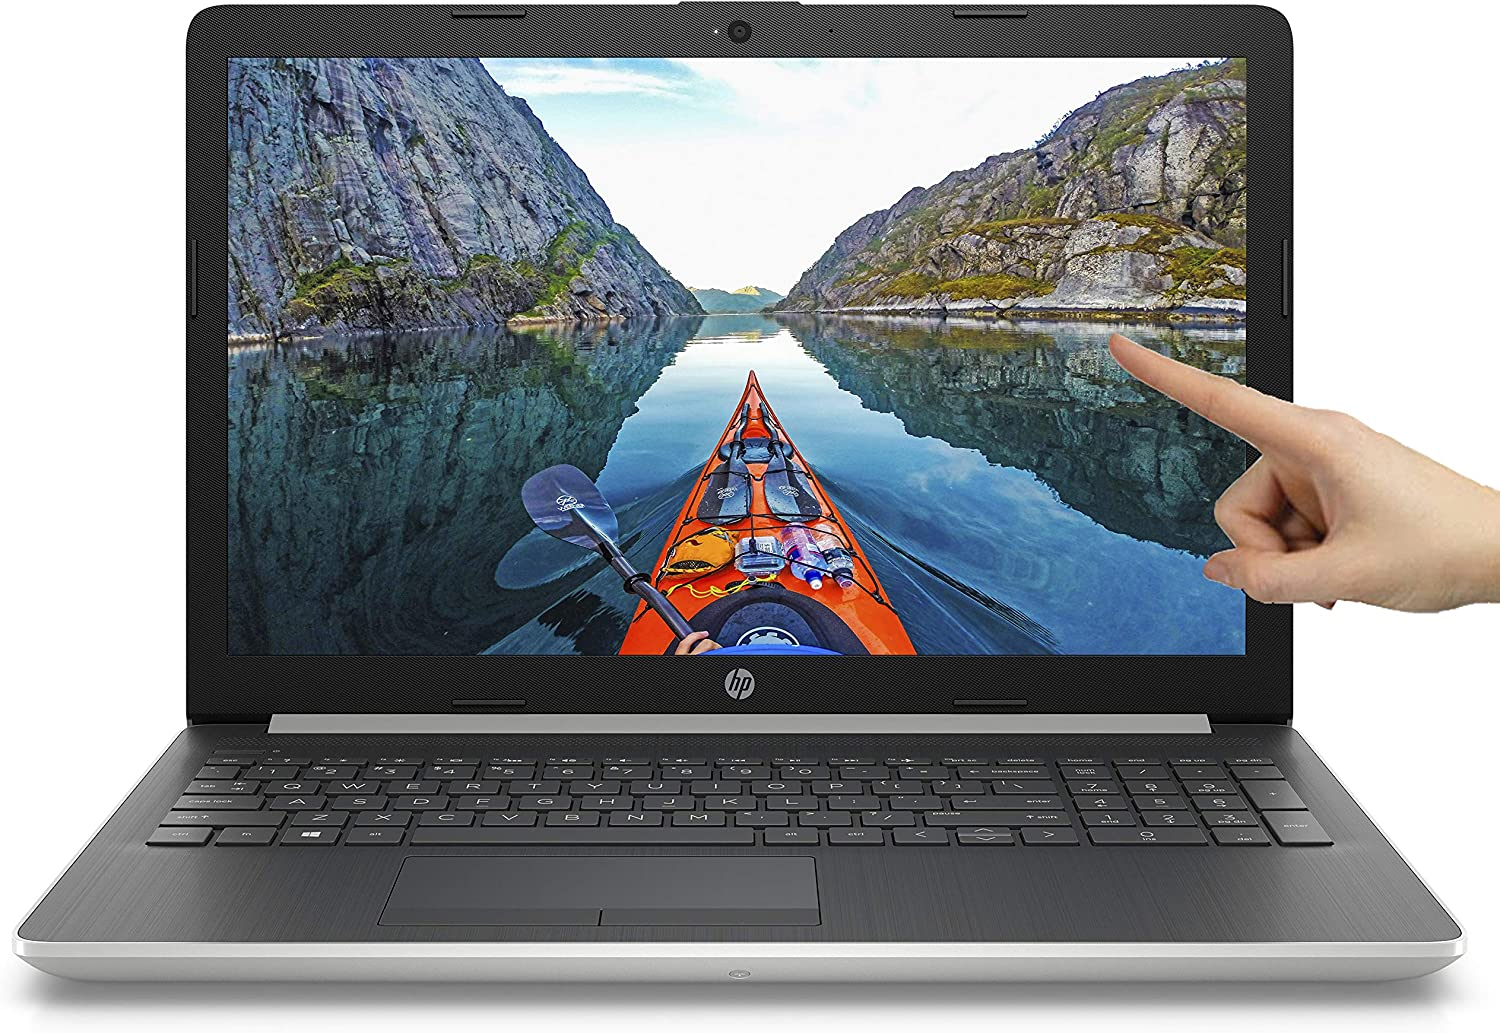 "HP 15.6"" HD Touch i7-8550U 4GHz 4GB DDR4 1TB HDD + 16GB Optane DVD Webcam Bluetooth HDMI Windows 10"